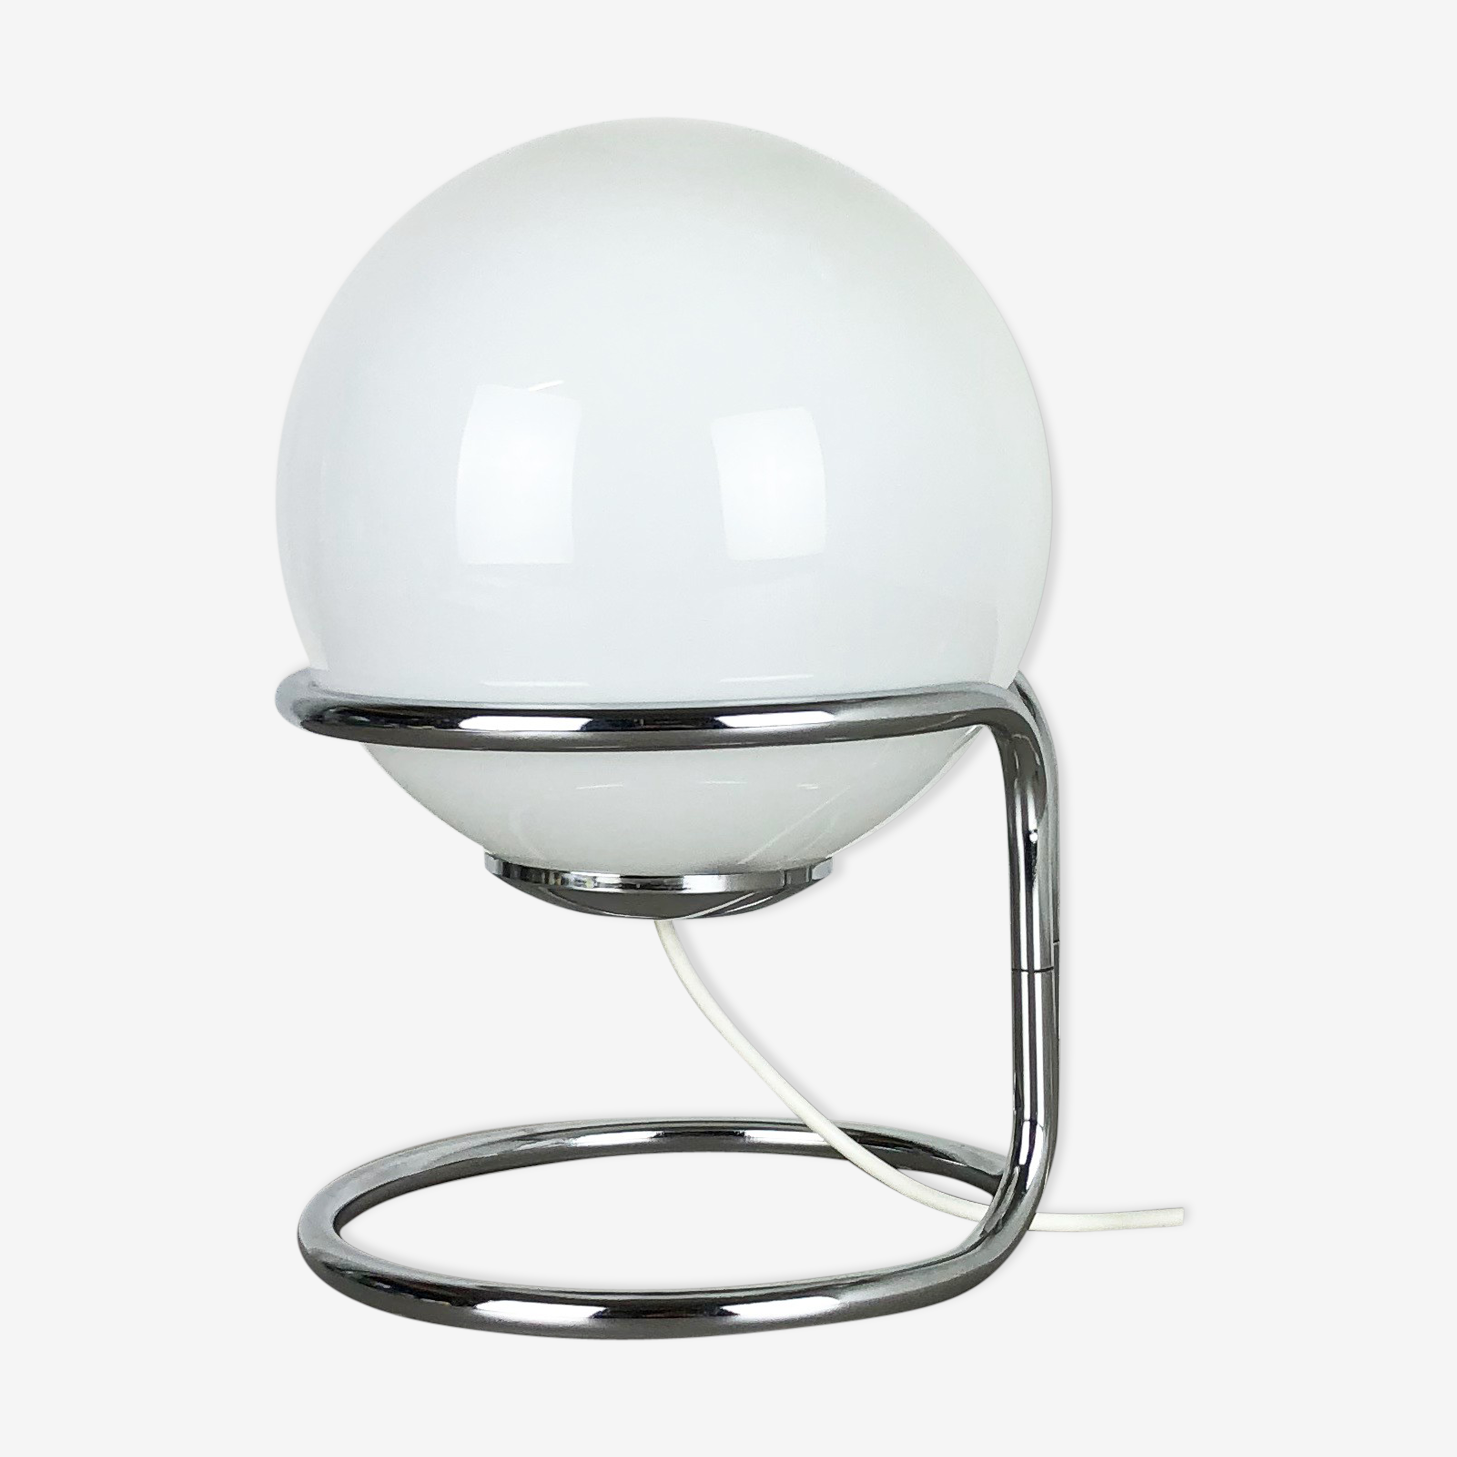 Lampe de table Spoutnik  par Honsel lights, 1970